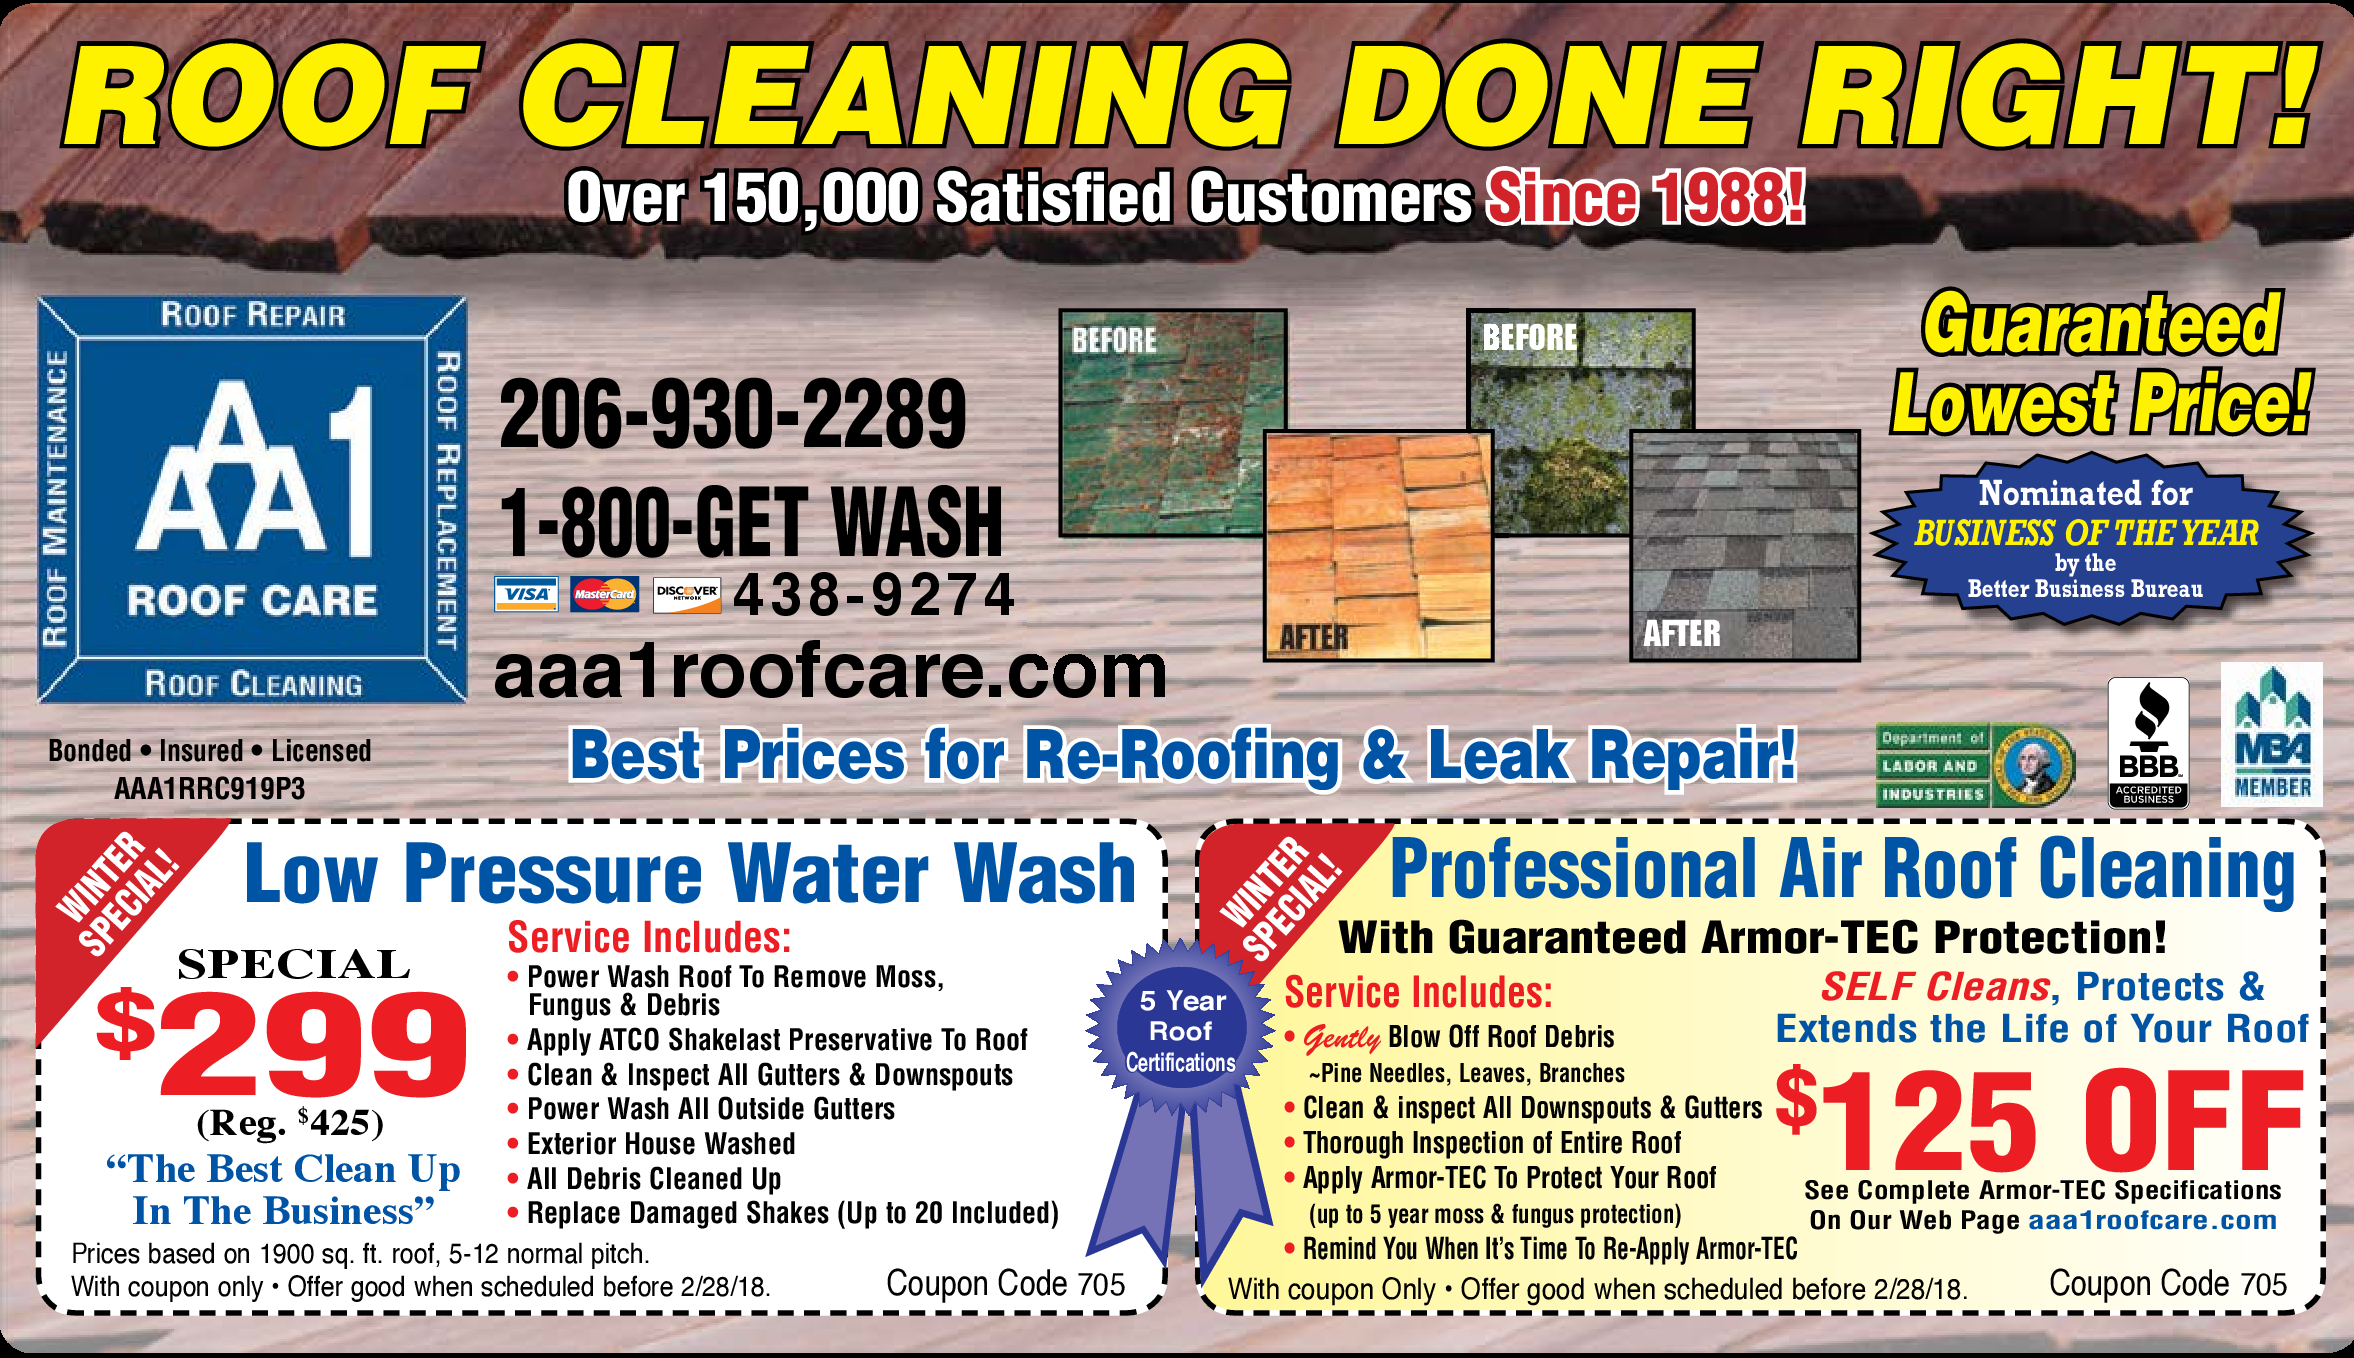 Printable local coupons free restaurant coupons online hometown aaa1 roof care fandeluxe Choice Image